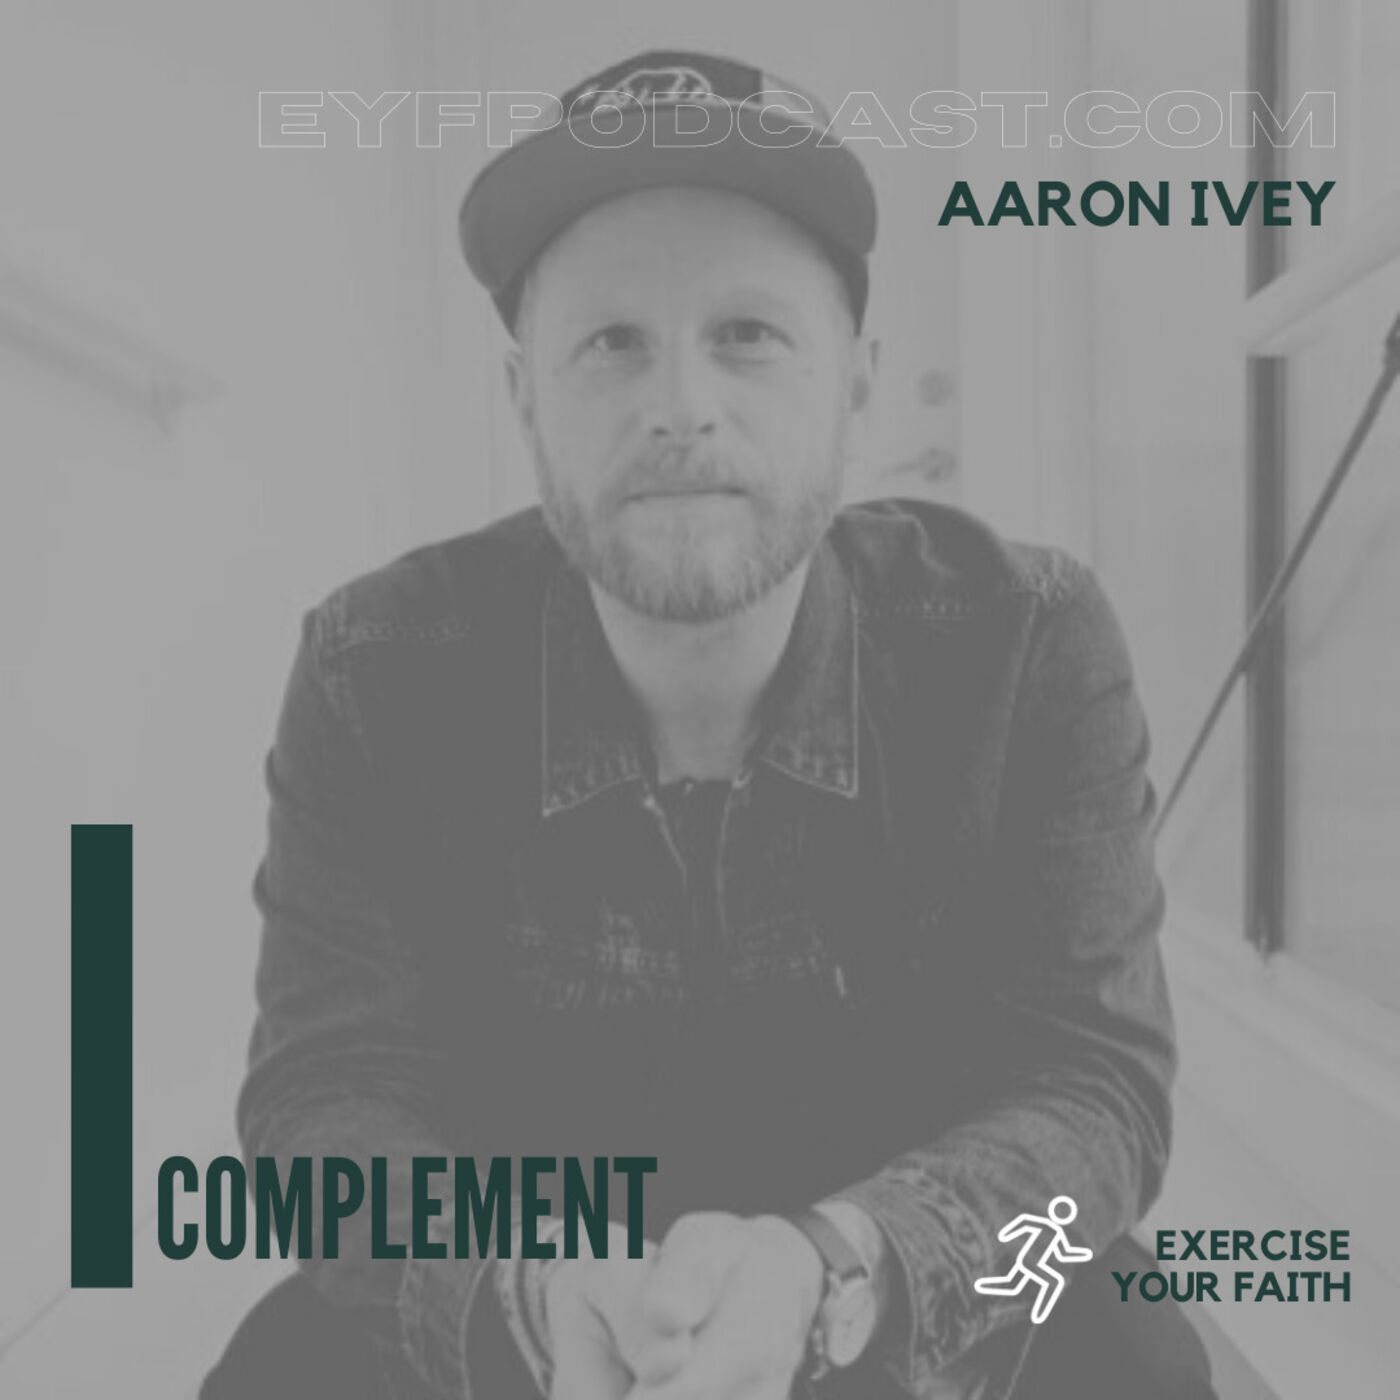 EYFPodcast- Exercise Your Faith by strengthening your marriage. COMPLEMENT is a two way street with Aaron Ivey